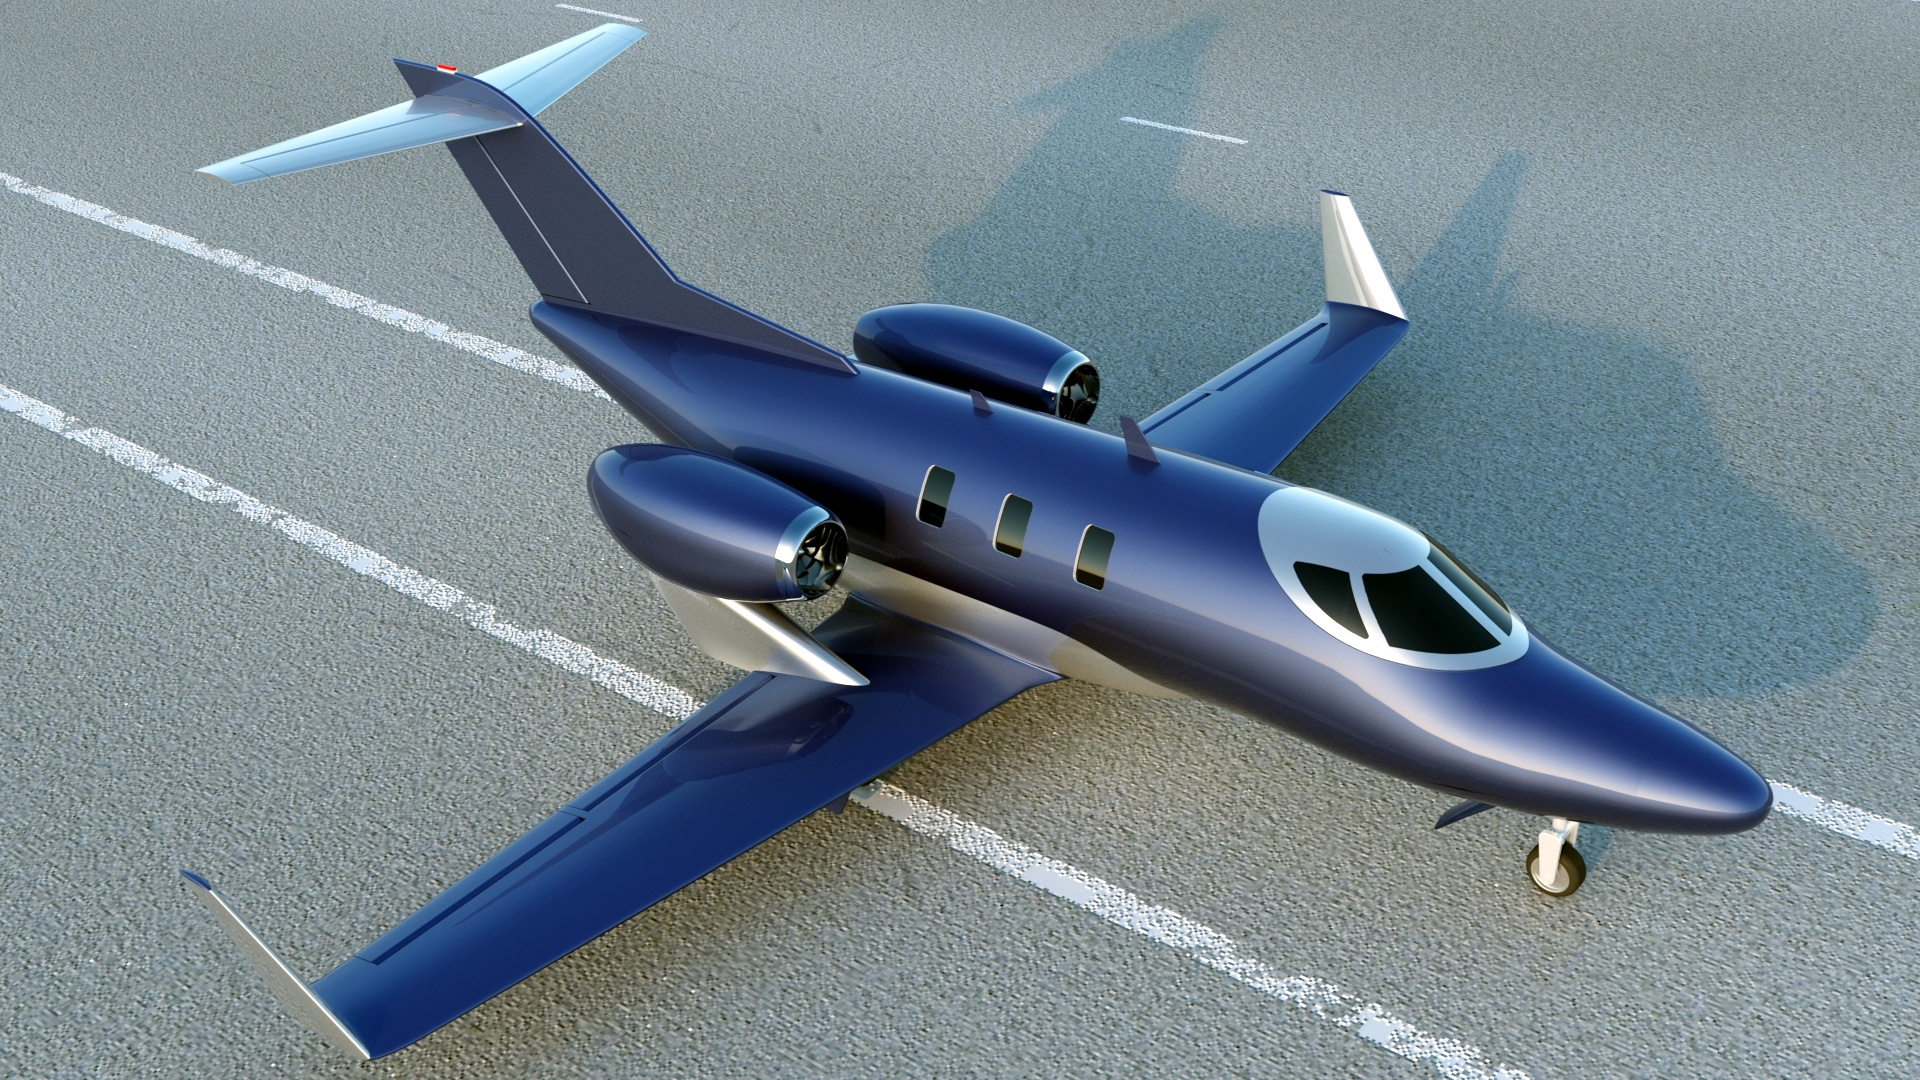 Honda jet wallpaper for How much is a honda jet